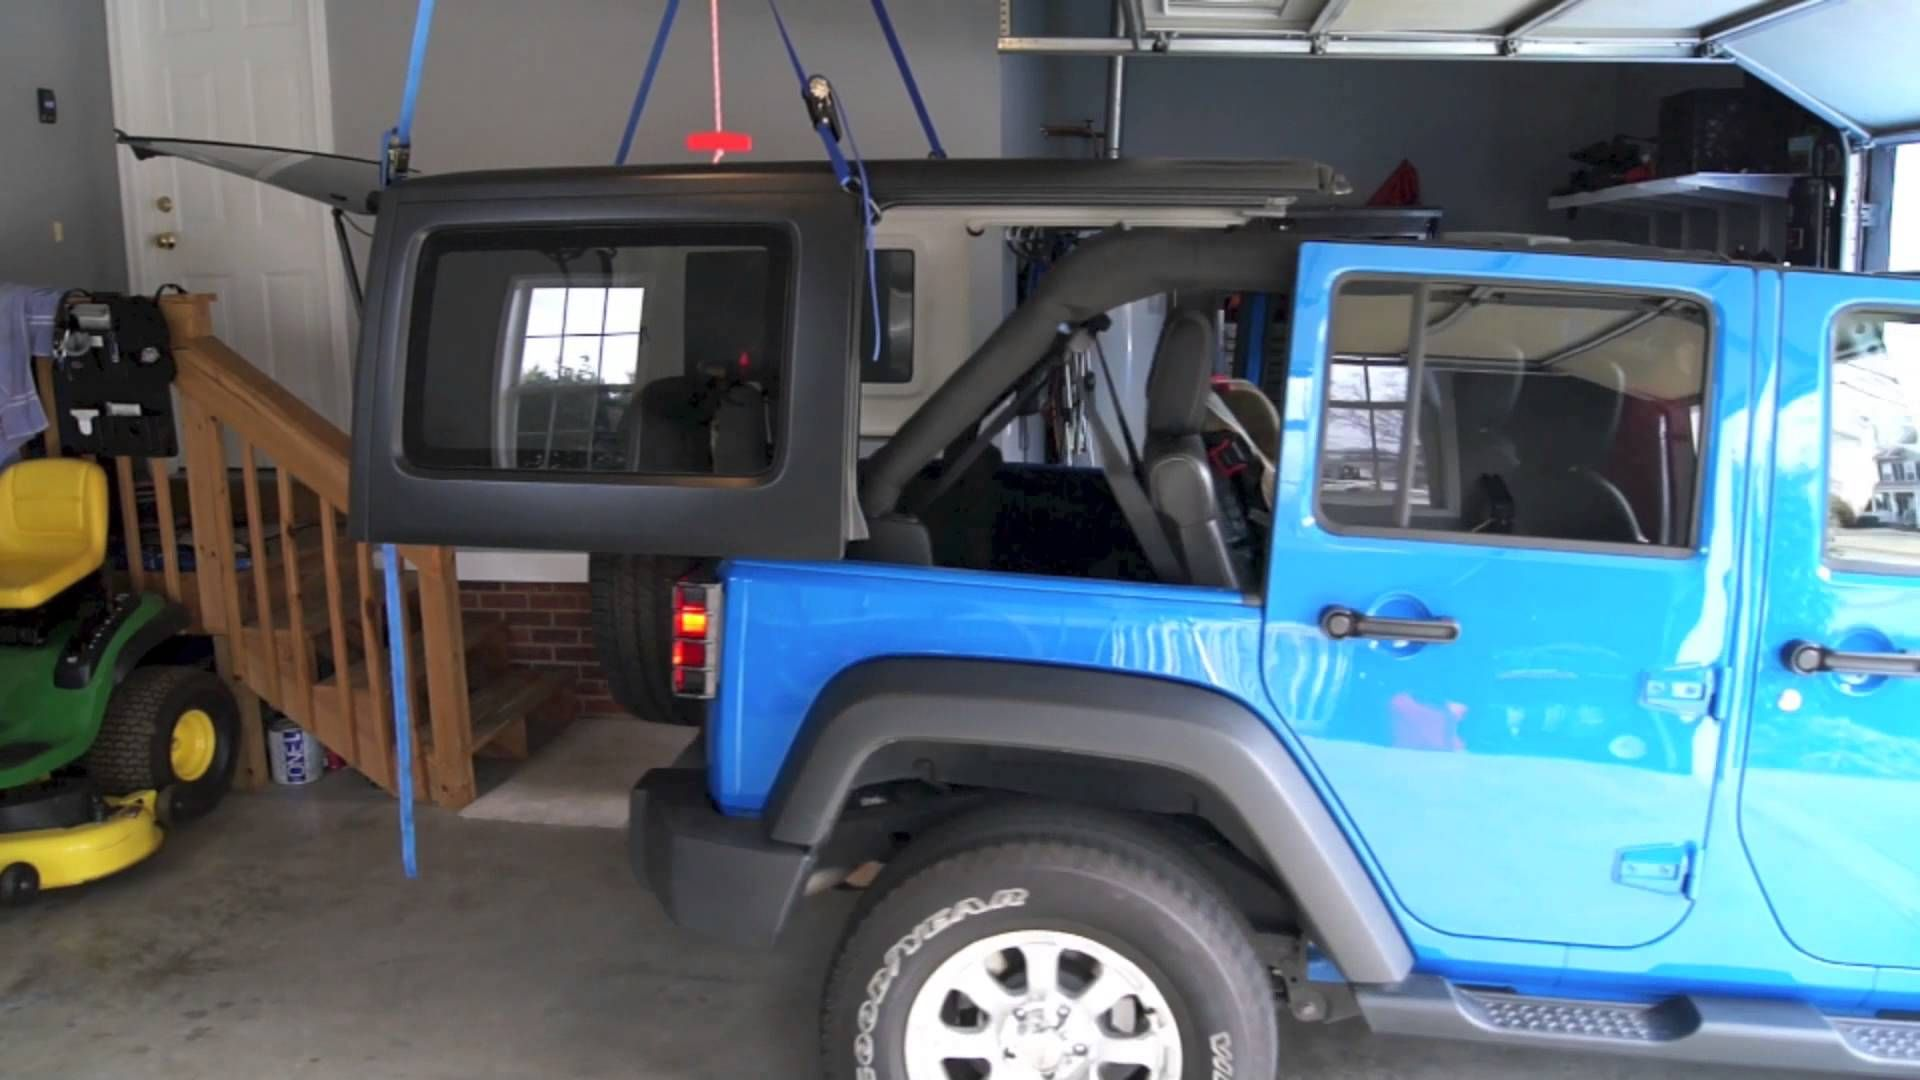 Diy Jeep Hoist Video Shows How To Use 4 Straps And Ratchet